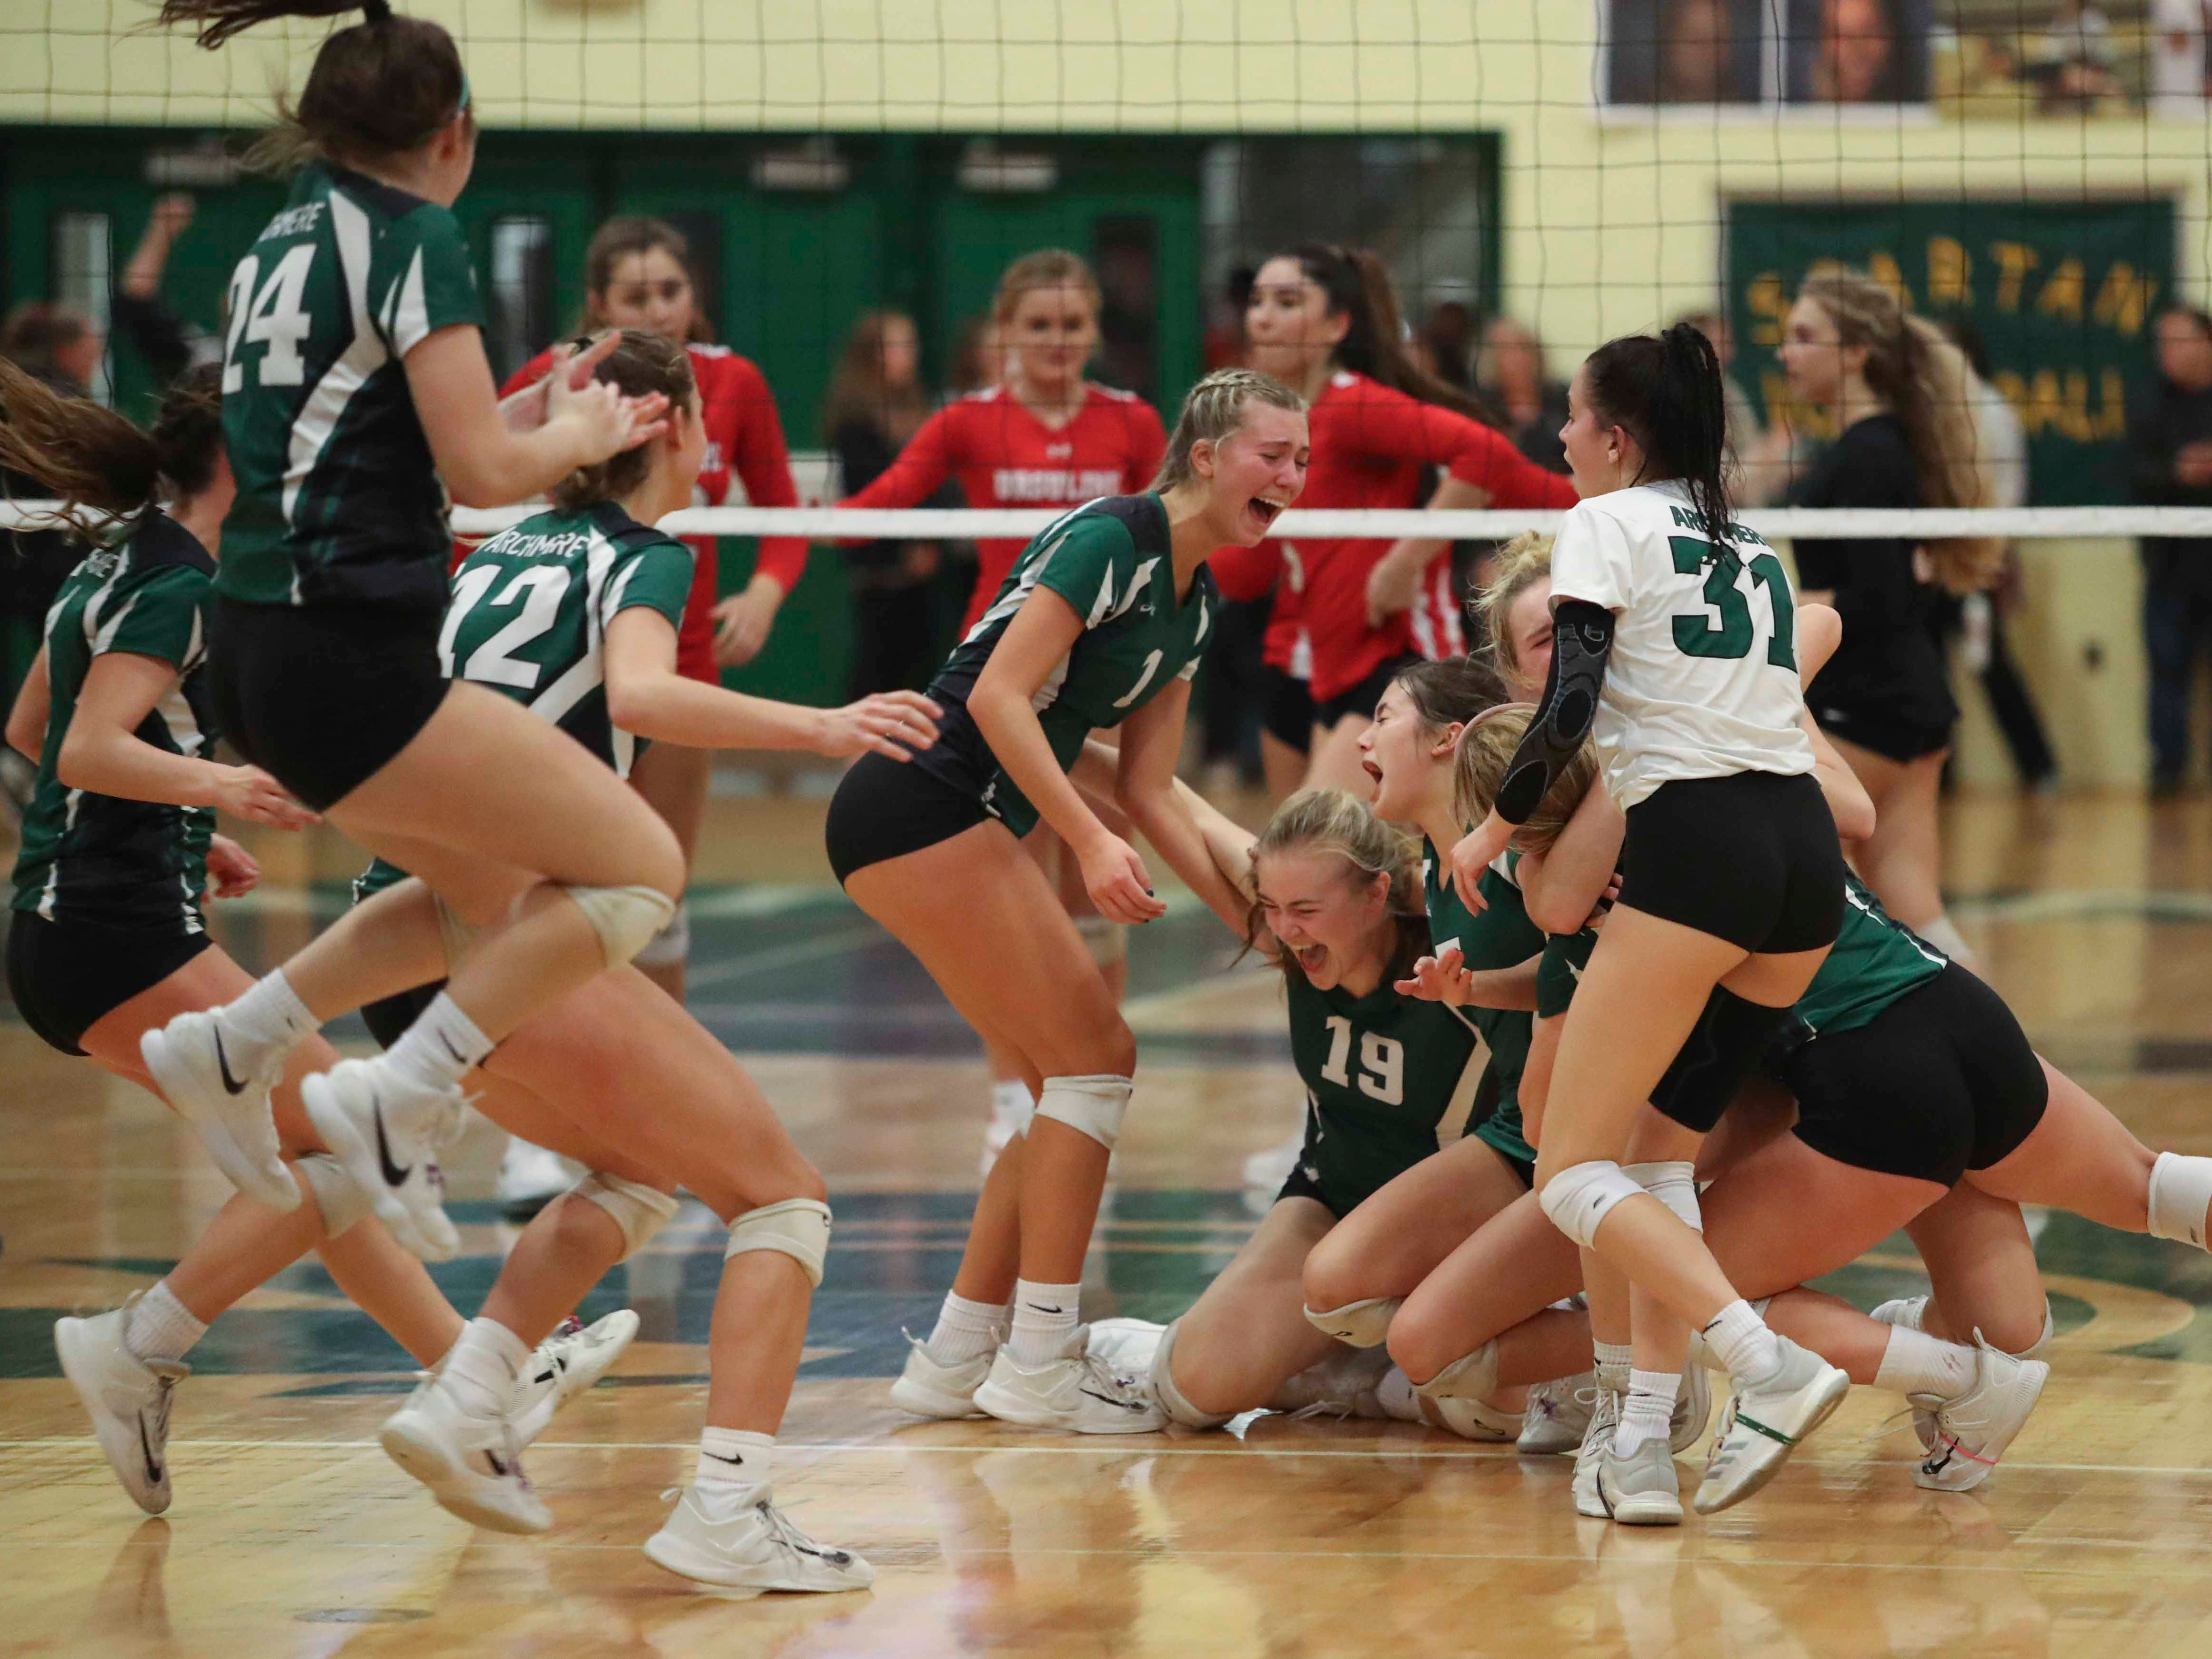 Archmere celebrates after beating Ursuline as the Auks advance to Monday's final in the DIAA state tournament Thursday at St. Mark's High School.